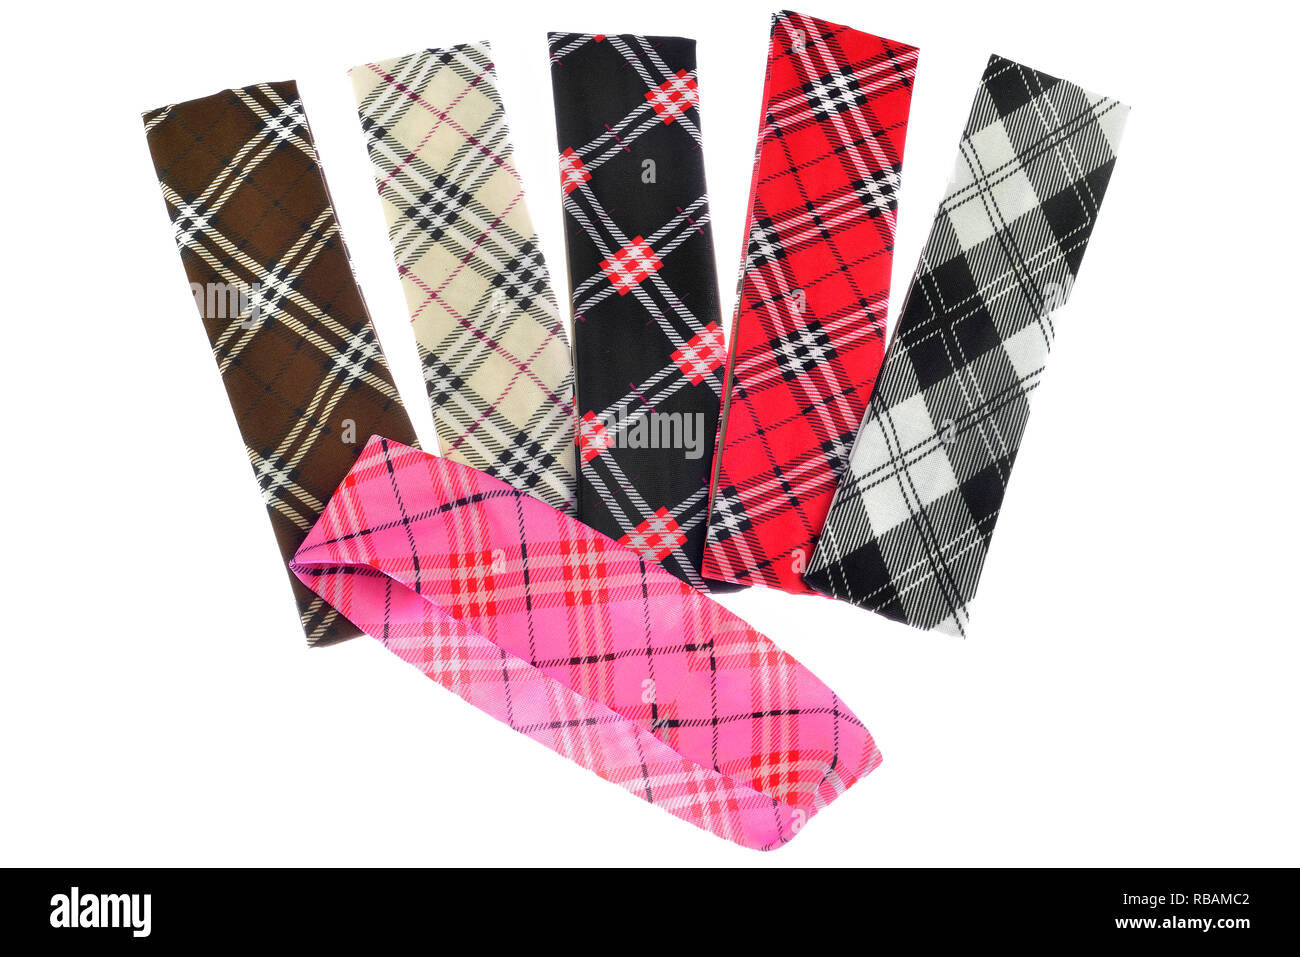 Lumberjack Plaid and Buffalo Check Patterns. Red, Black, White and Khaki Plaid, Tartan and Gingham Patterns. Trendy tartan head bands for children. - Stock Image